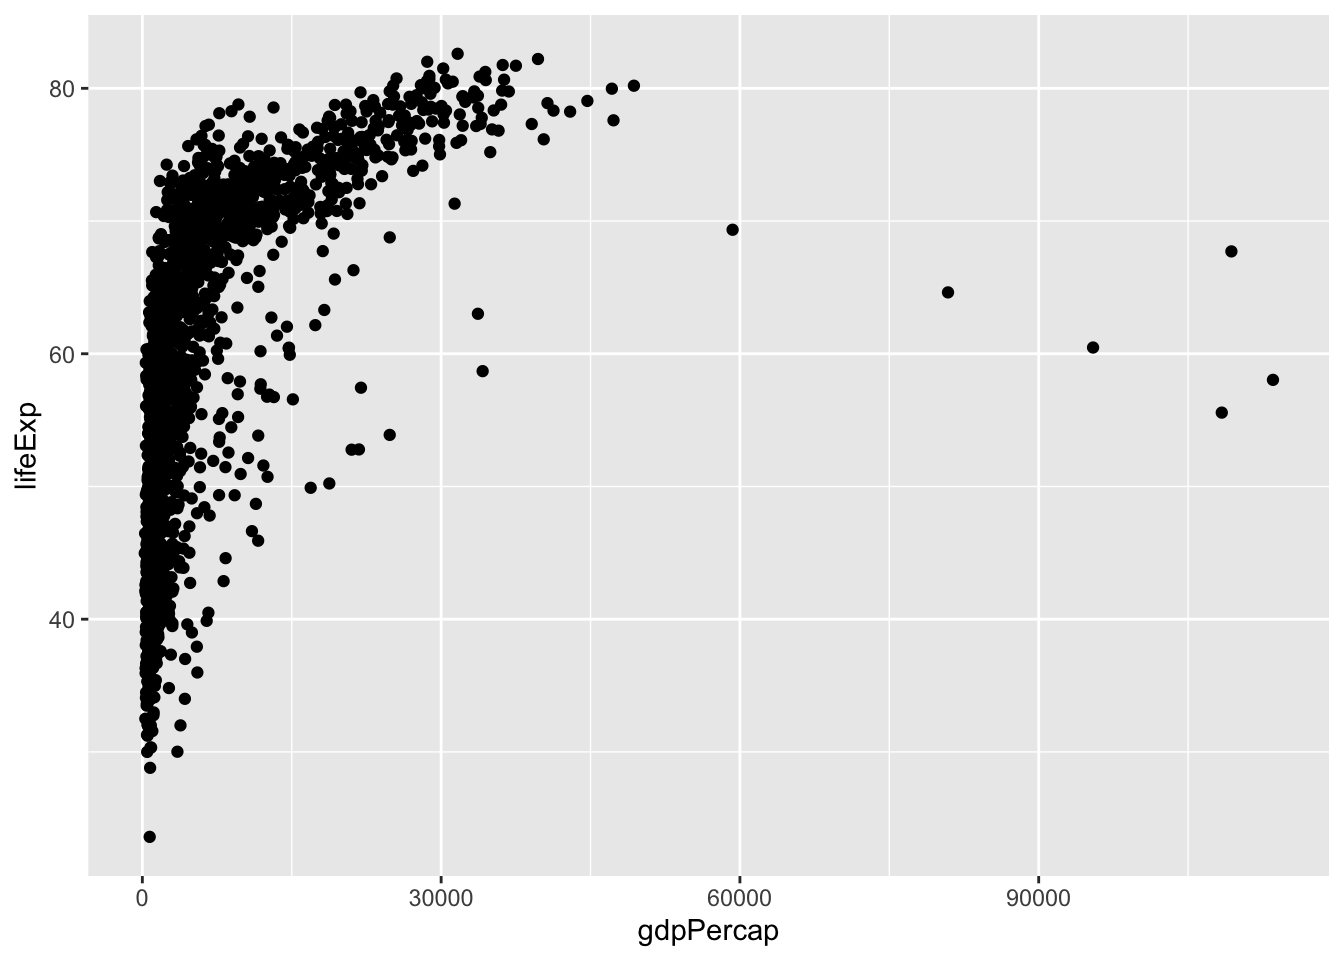 ggplot2: Mastering the basics